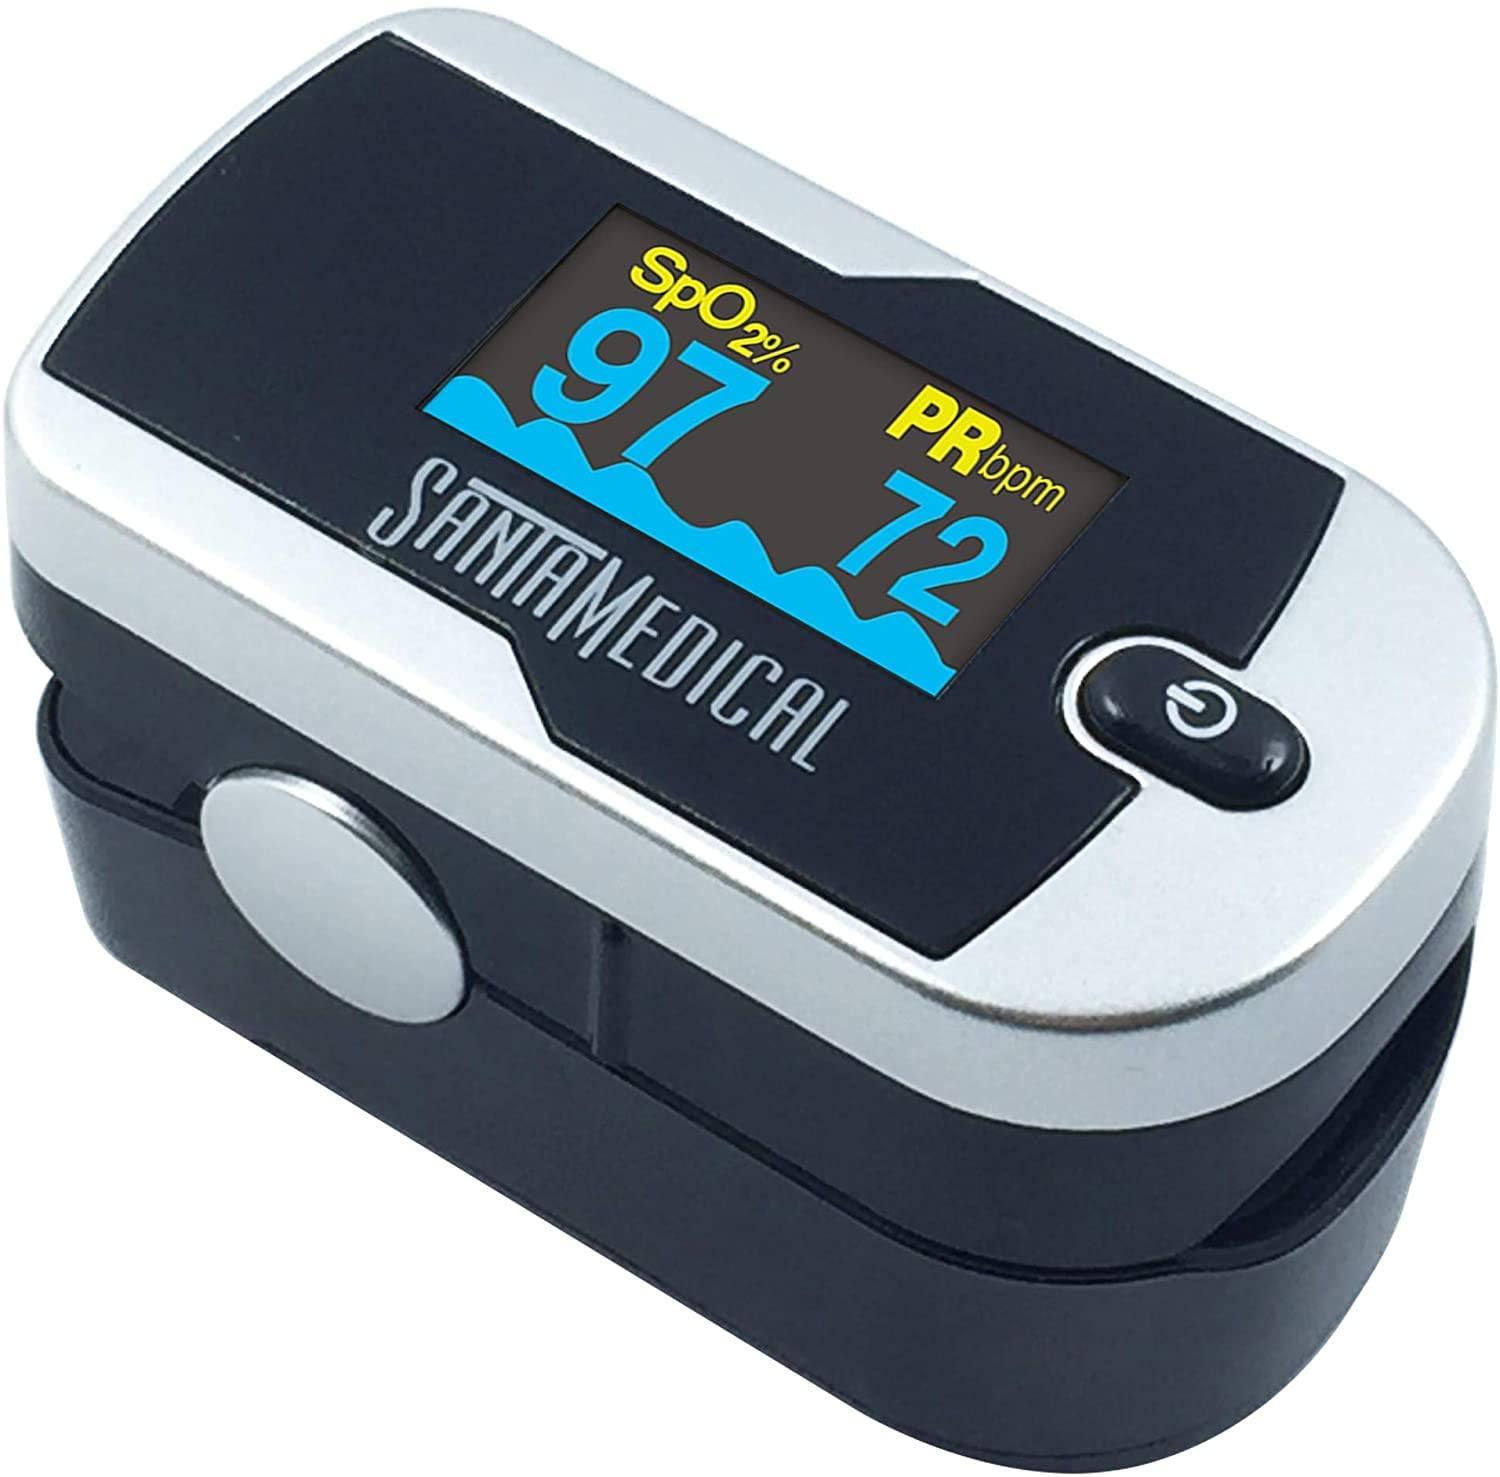 Santamedical Generation 2 Fingertip Pulse Oximeter Oximetry Blood Oxygen Saturation Monitor with Batteries and Lanyard : Health & Household